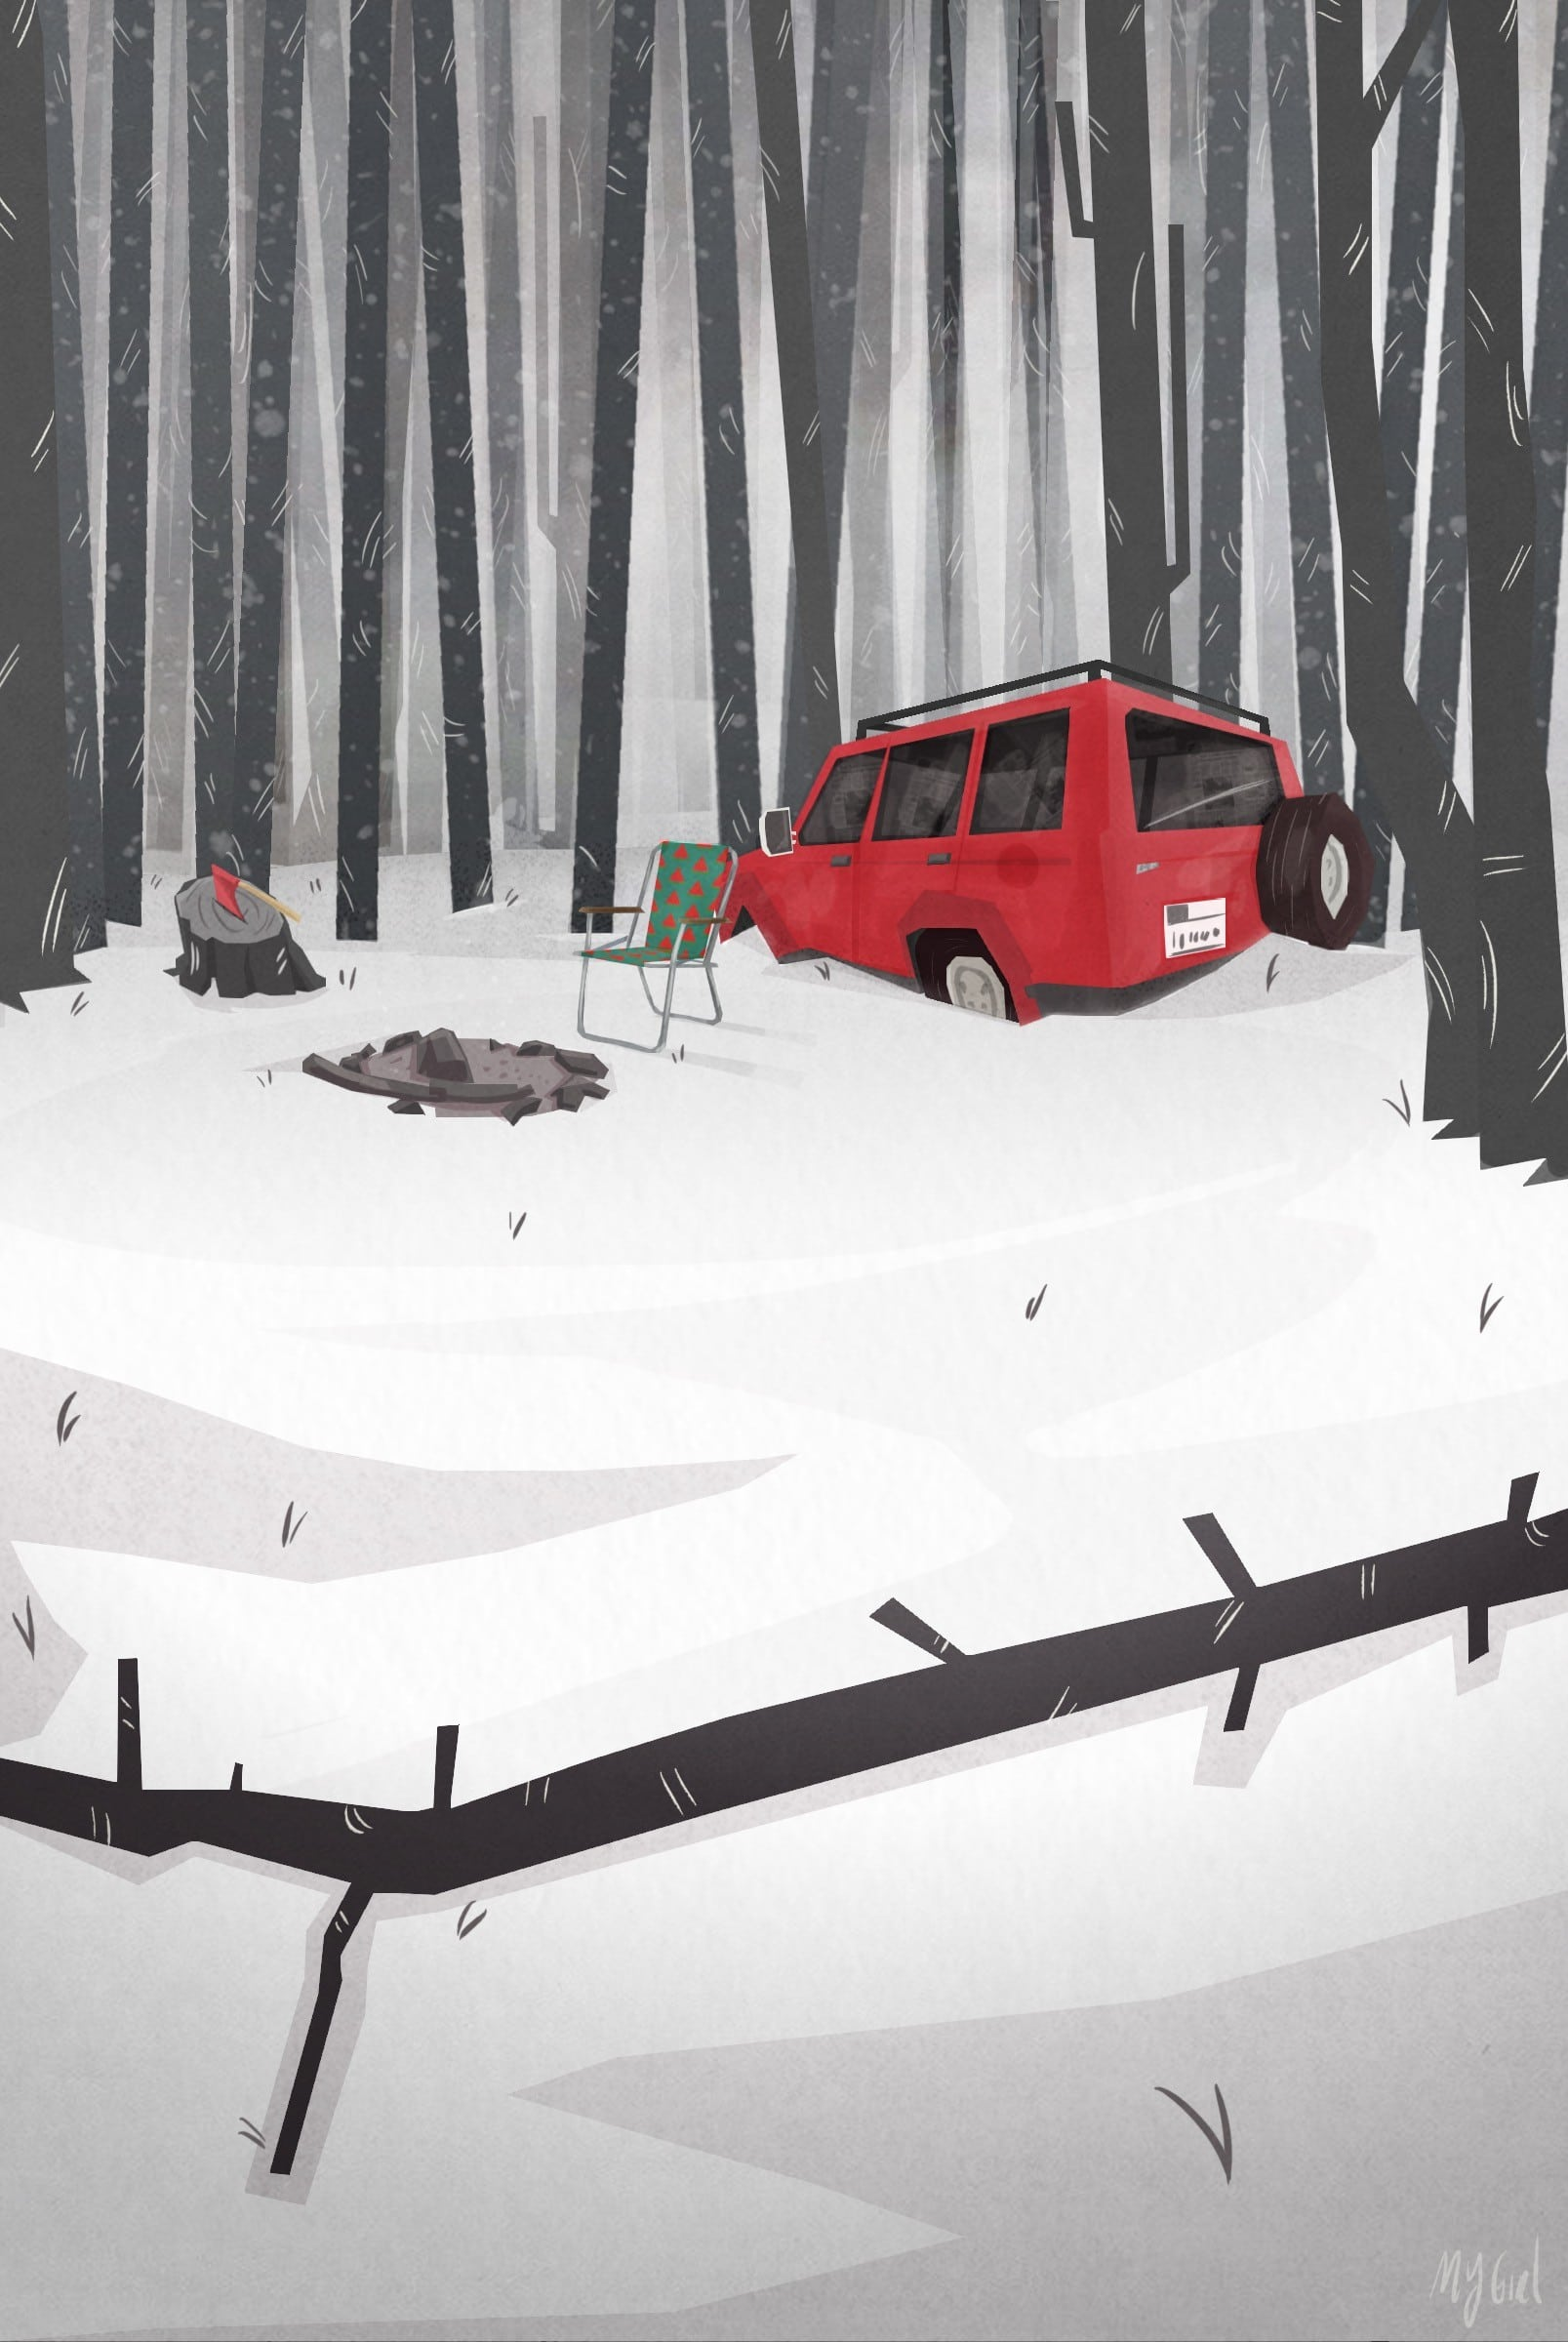 A red jeep in snow - in Murder At Malone Manor inspiration post by Matt McDyre